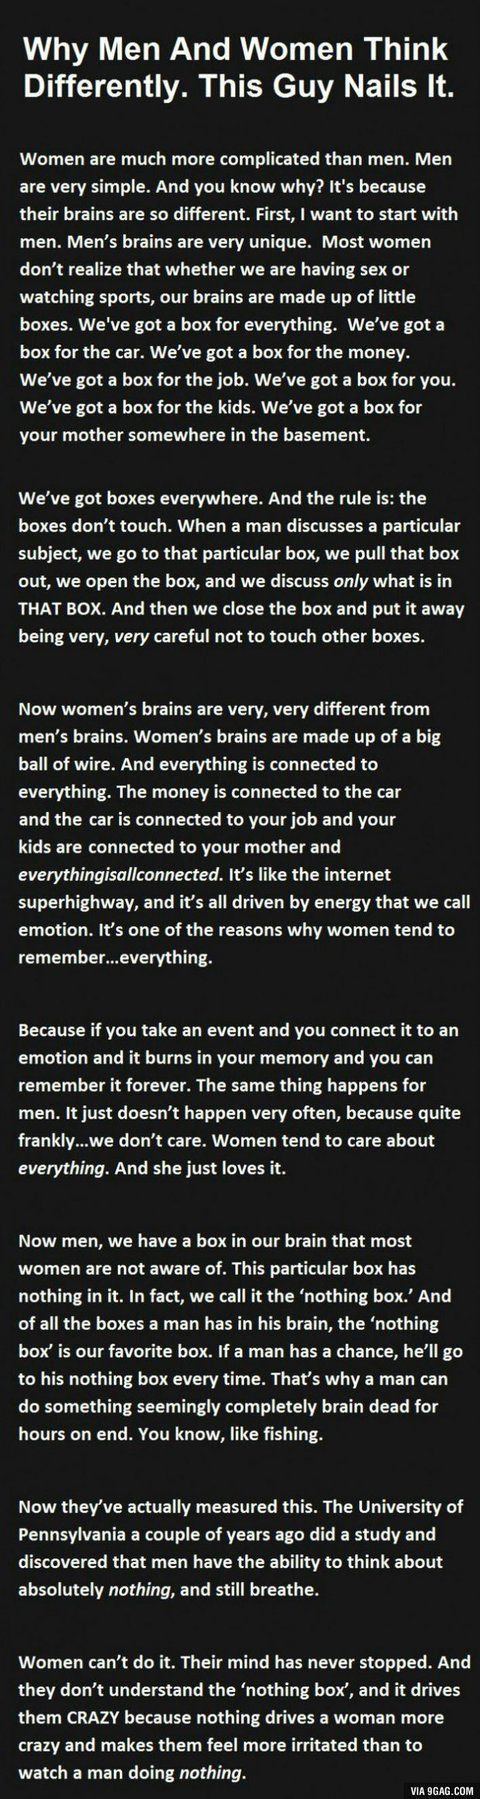 This made me laugh a little bit...then I realized (from my own female perspective) there is some truth here